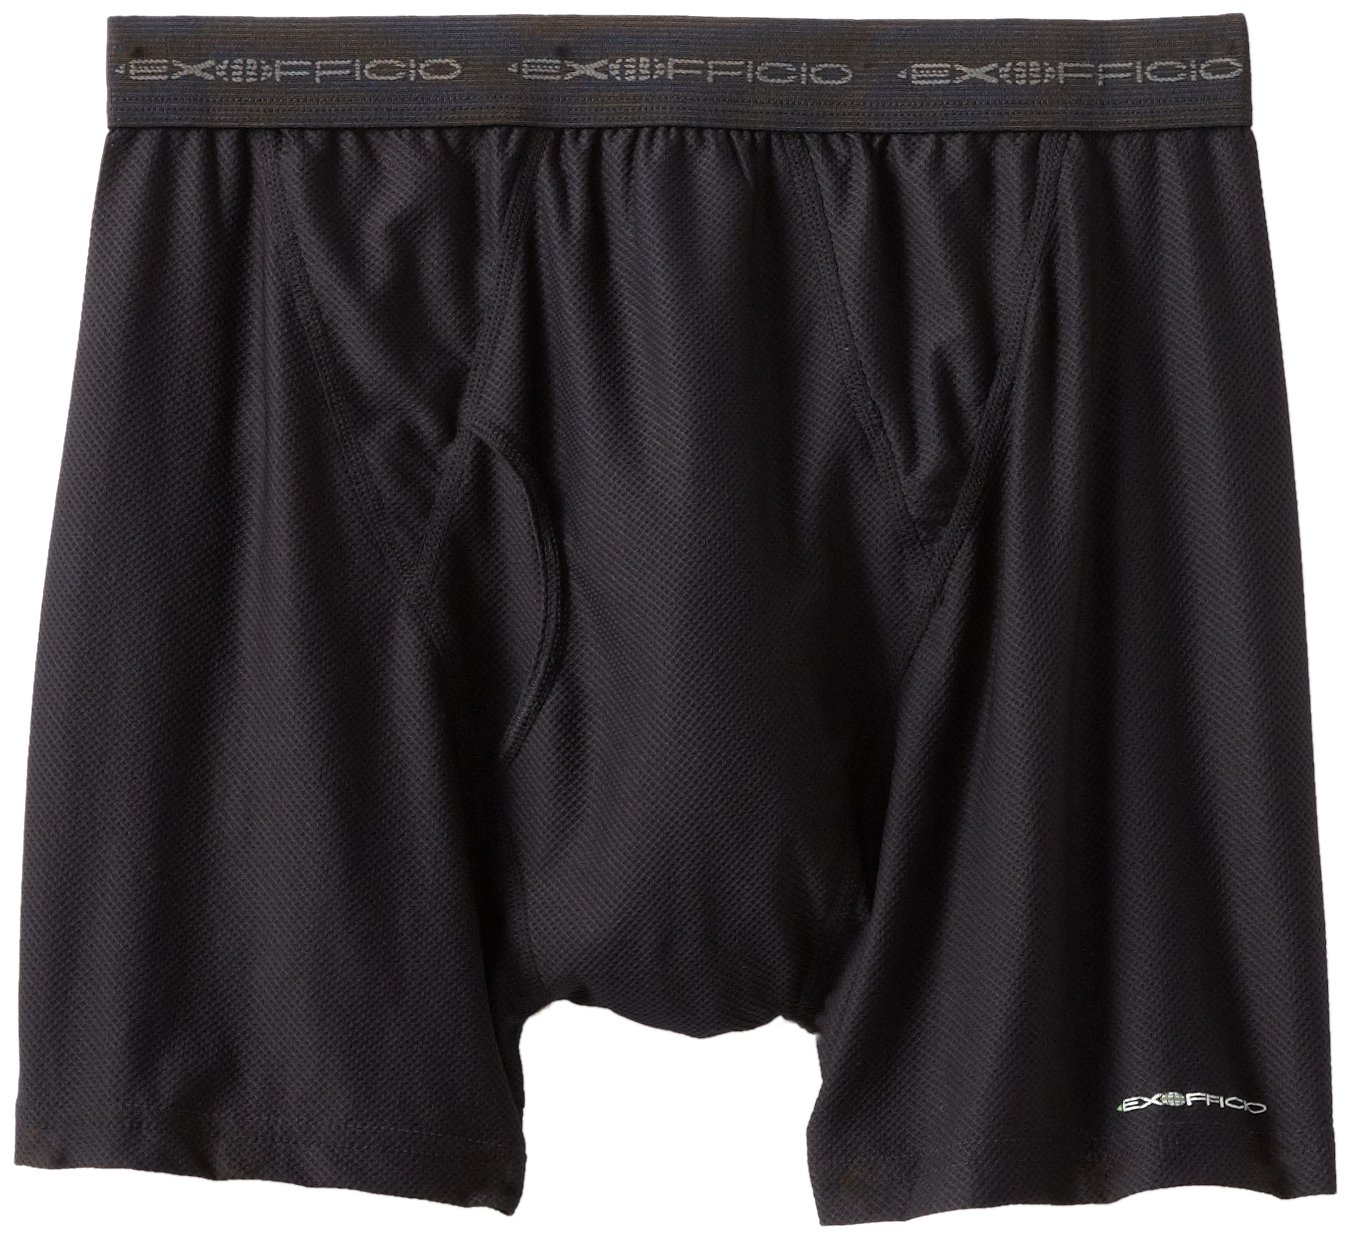 ExOfficio Men&#8217;s Give-N-Go Boxer Brief,Black,Medium $15.64